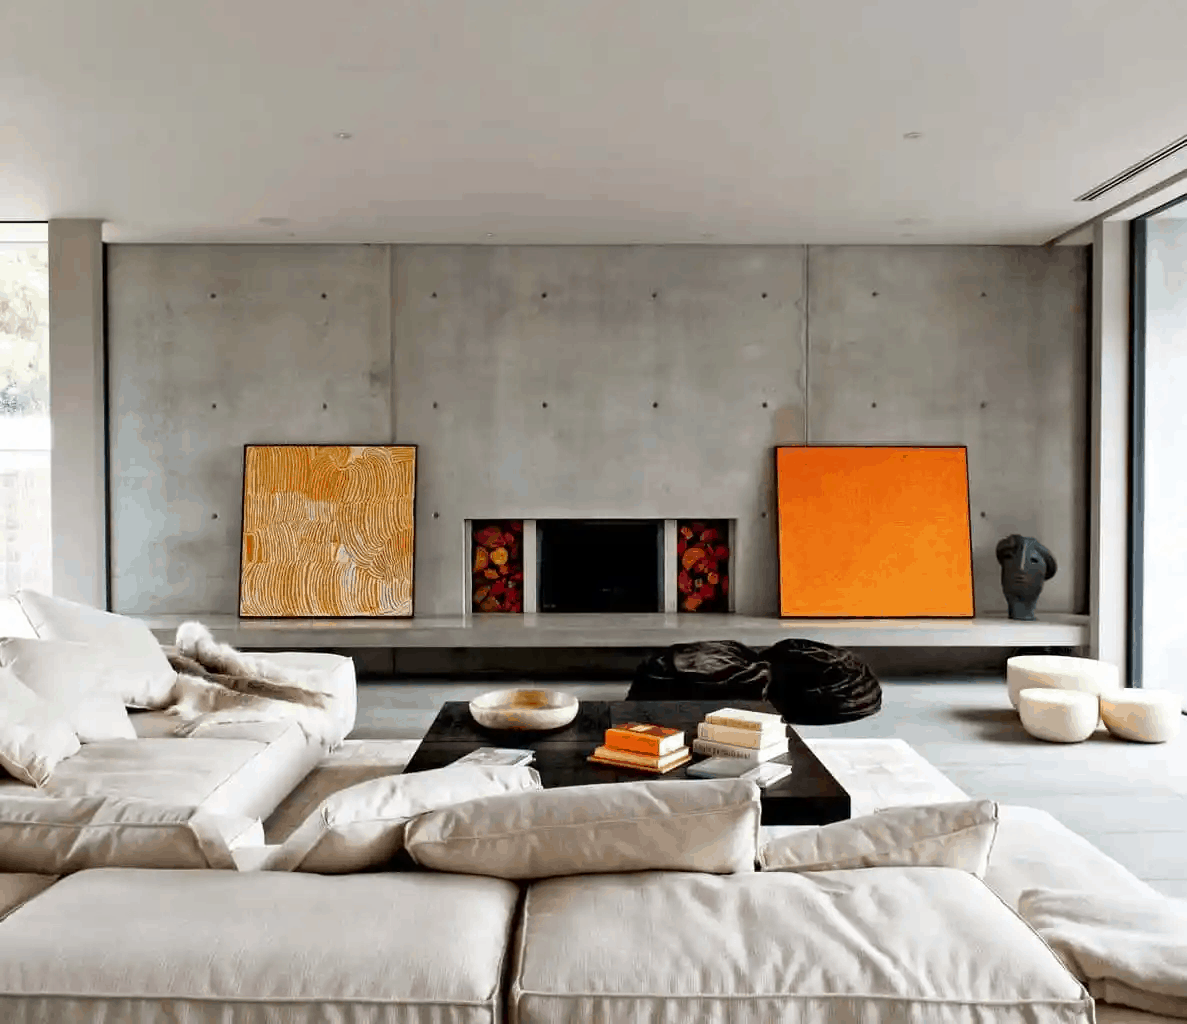 sustainable thermal mass concrete walls rob mills architecture